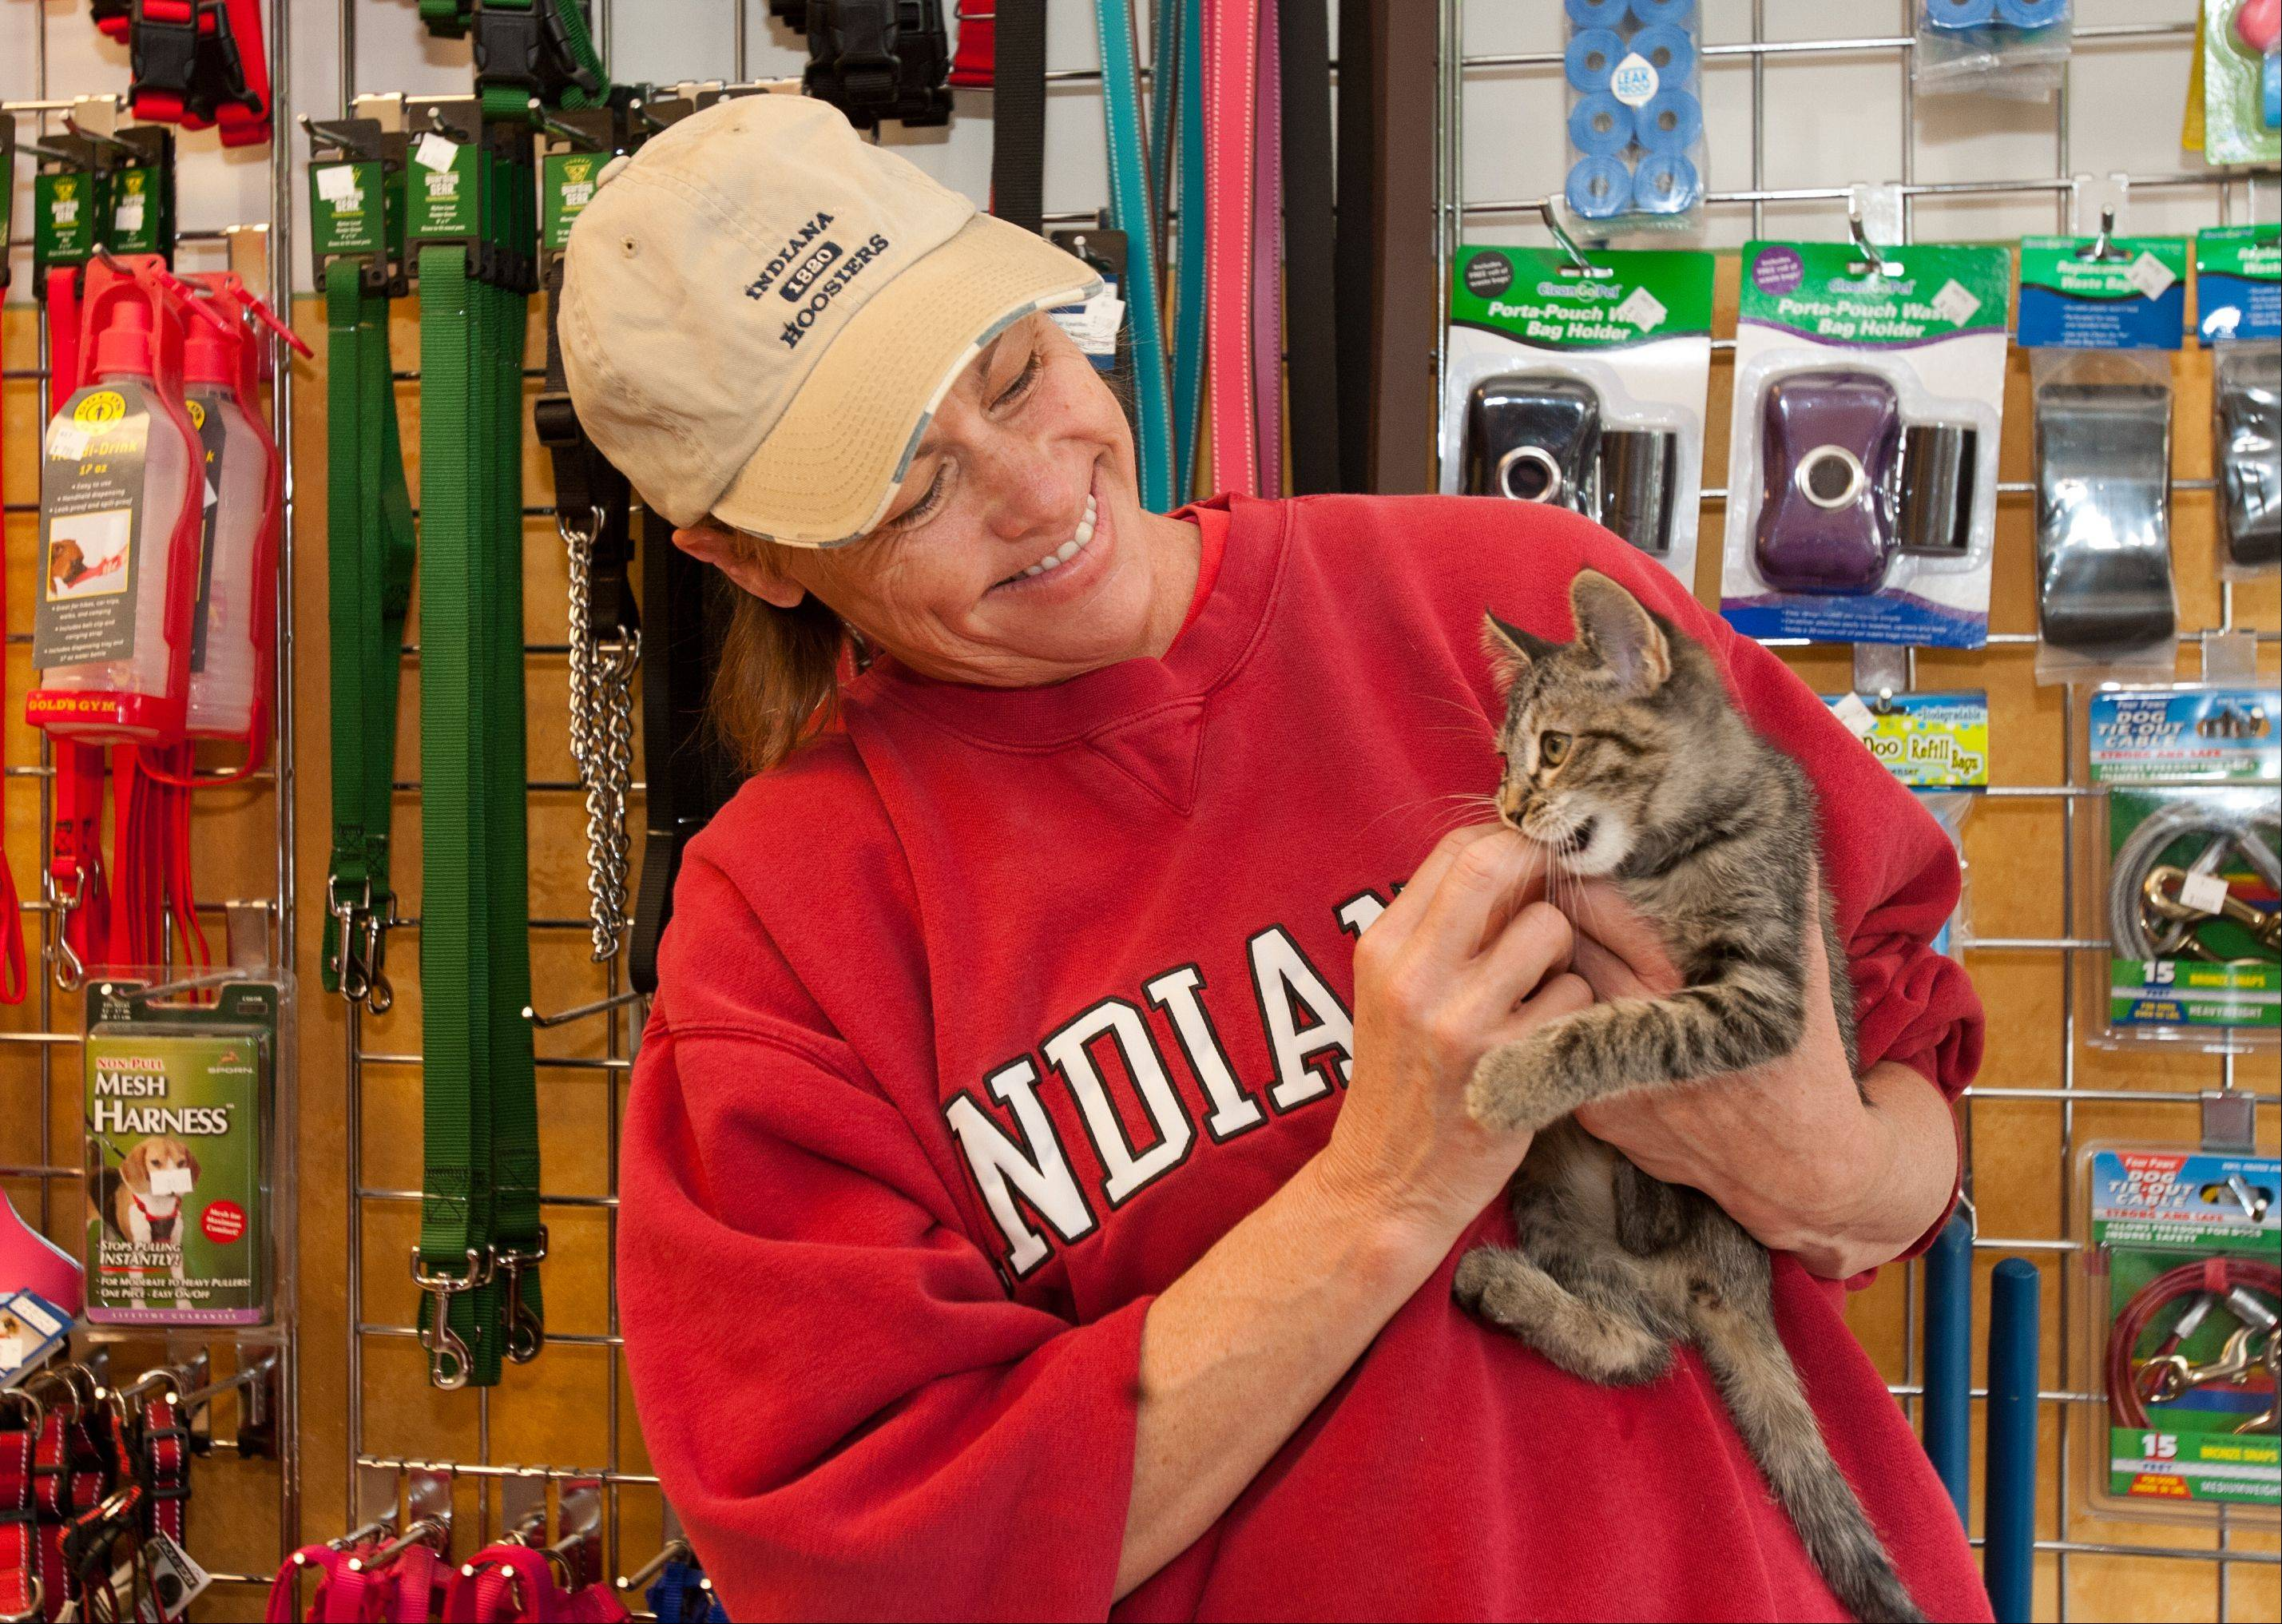 Chris Gustaitis of Naperville volunteers for the Waifs and Strays Animal Rescue group, which shelters some animals at the All Pet Pantry in Lisle.